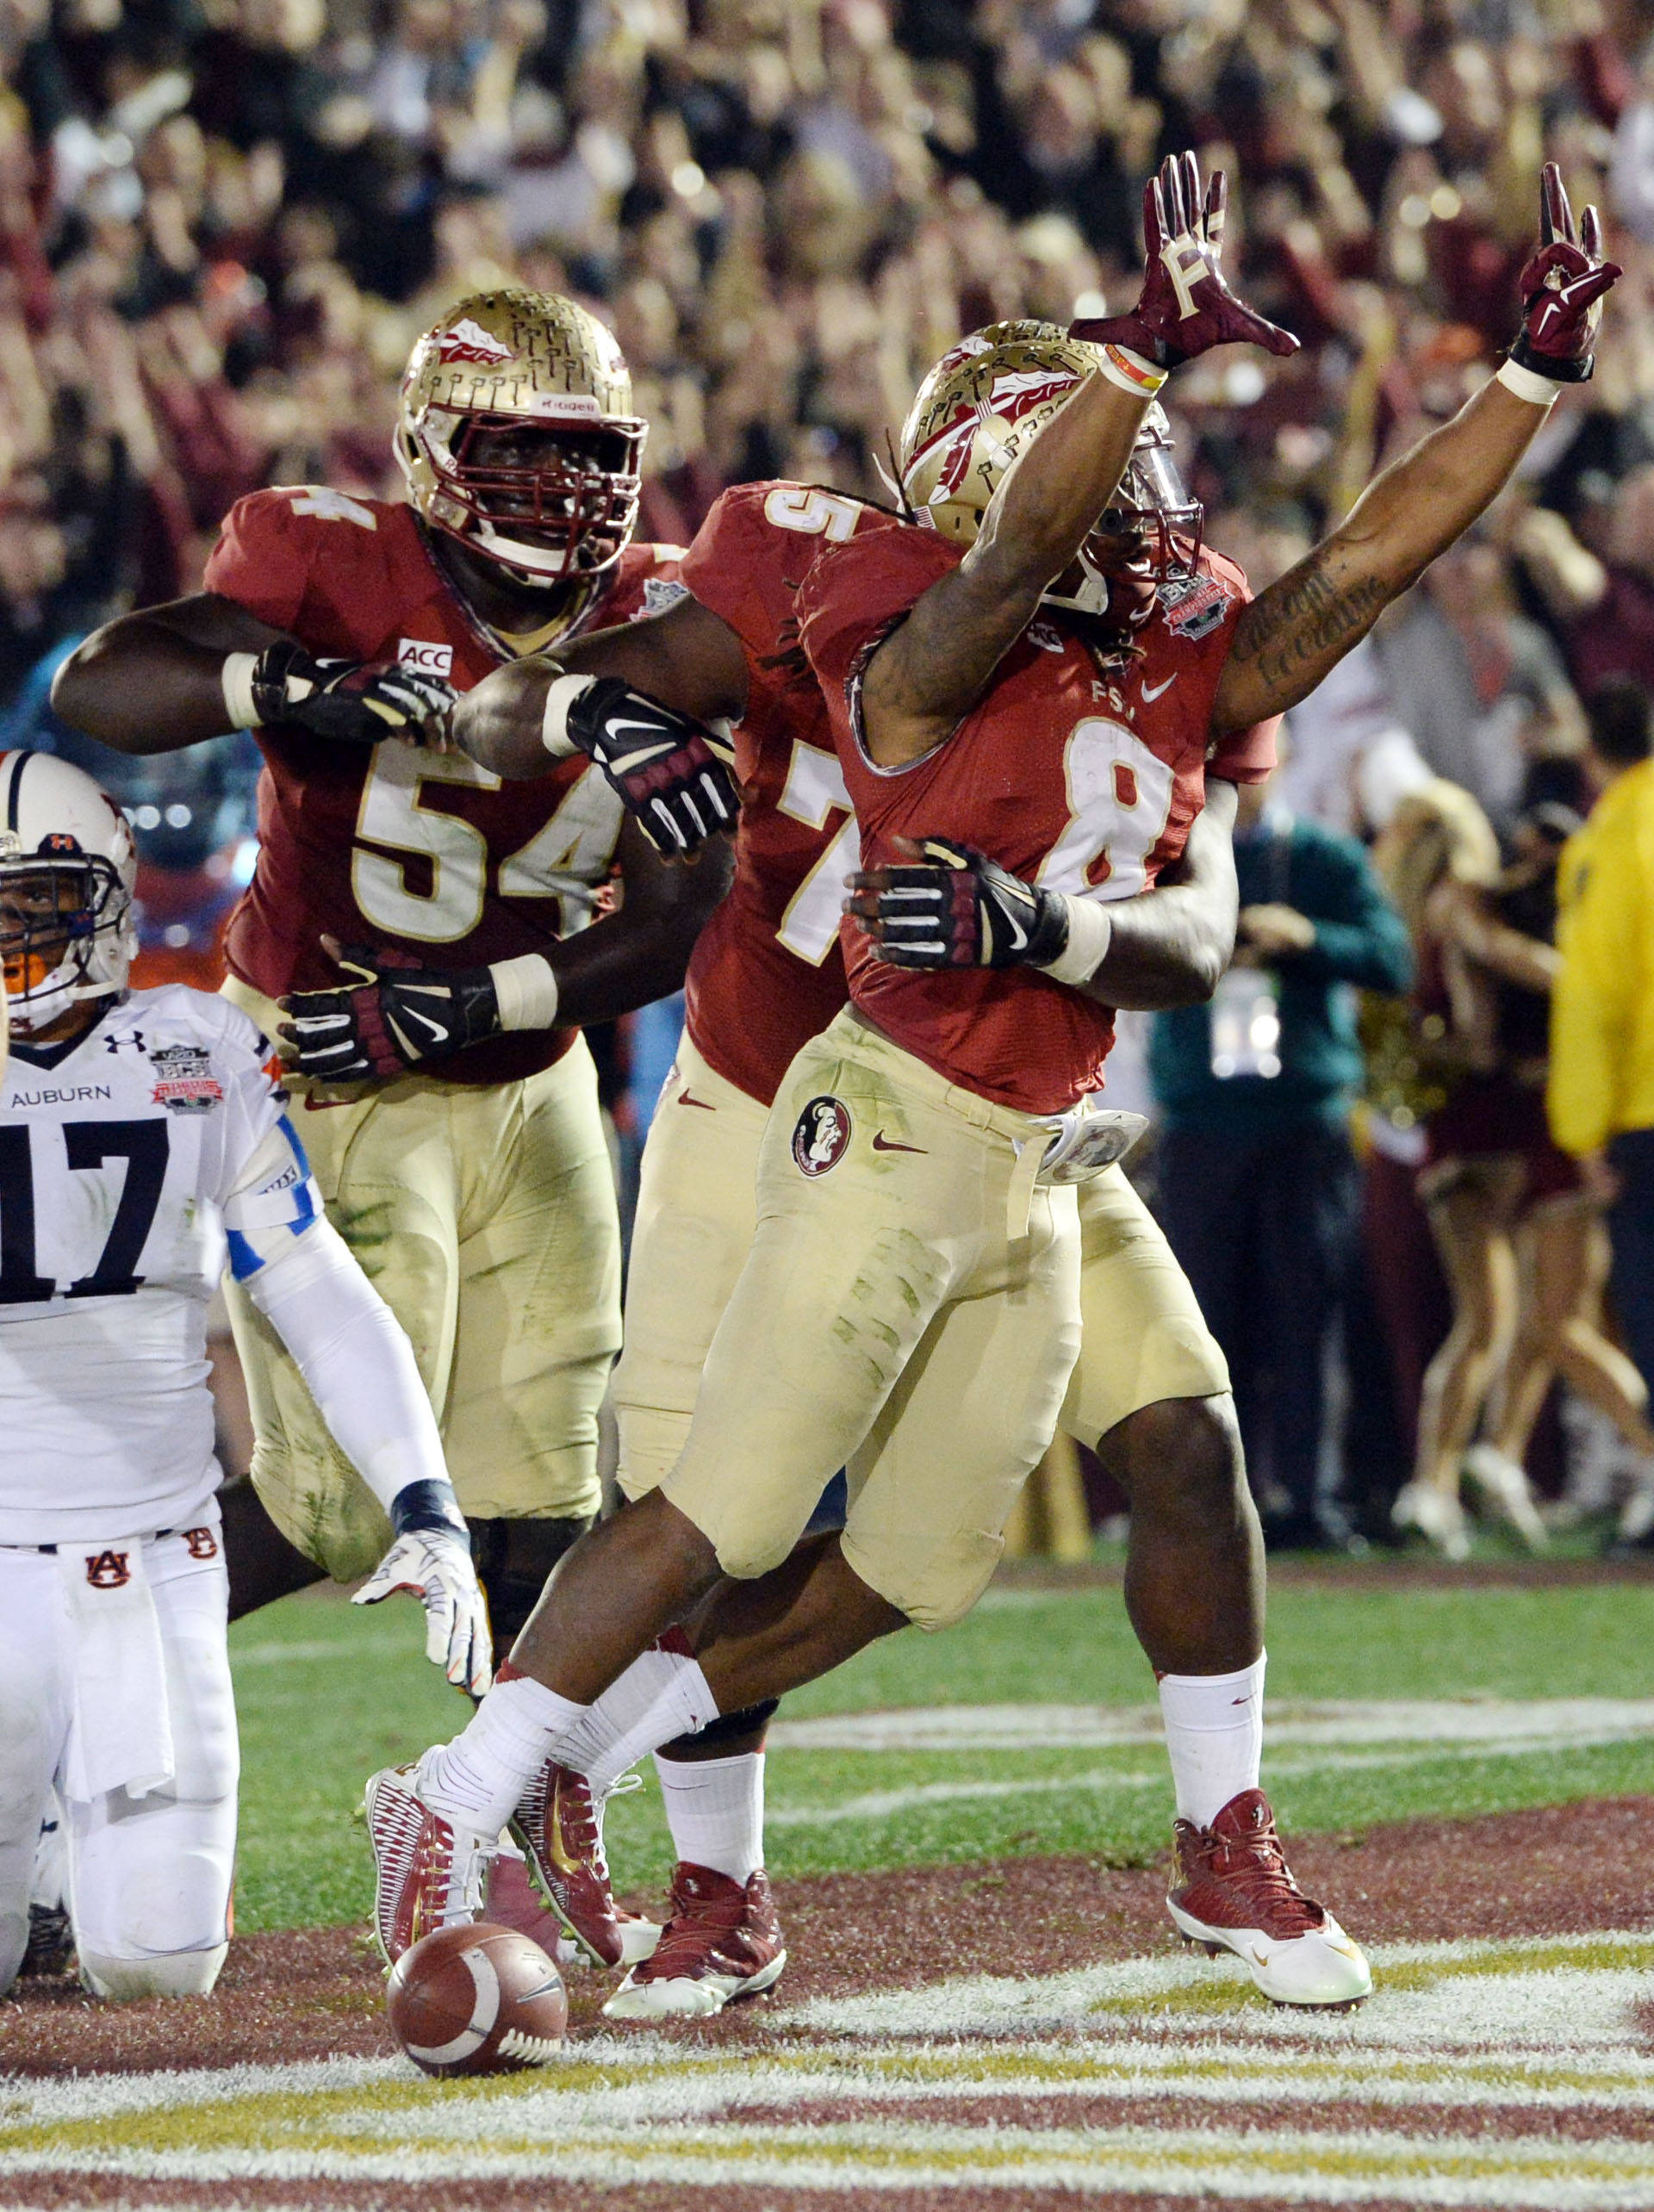 Jan 6, 2014; Pasadena, CA, USA; Florida State Seminoles running back Devonta Freeman (8) celebrates with teammates after scoring a touchdown against the Auburn Tigers during the first half of the 2014 BCS National Championship game at the Rose Bowl.  Mandatory Credit: Jayne Kamin-Oncea-USA TODAY Sports